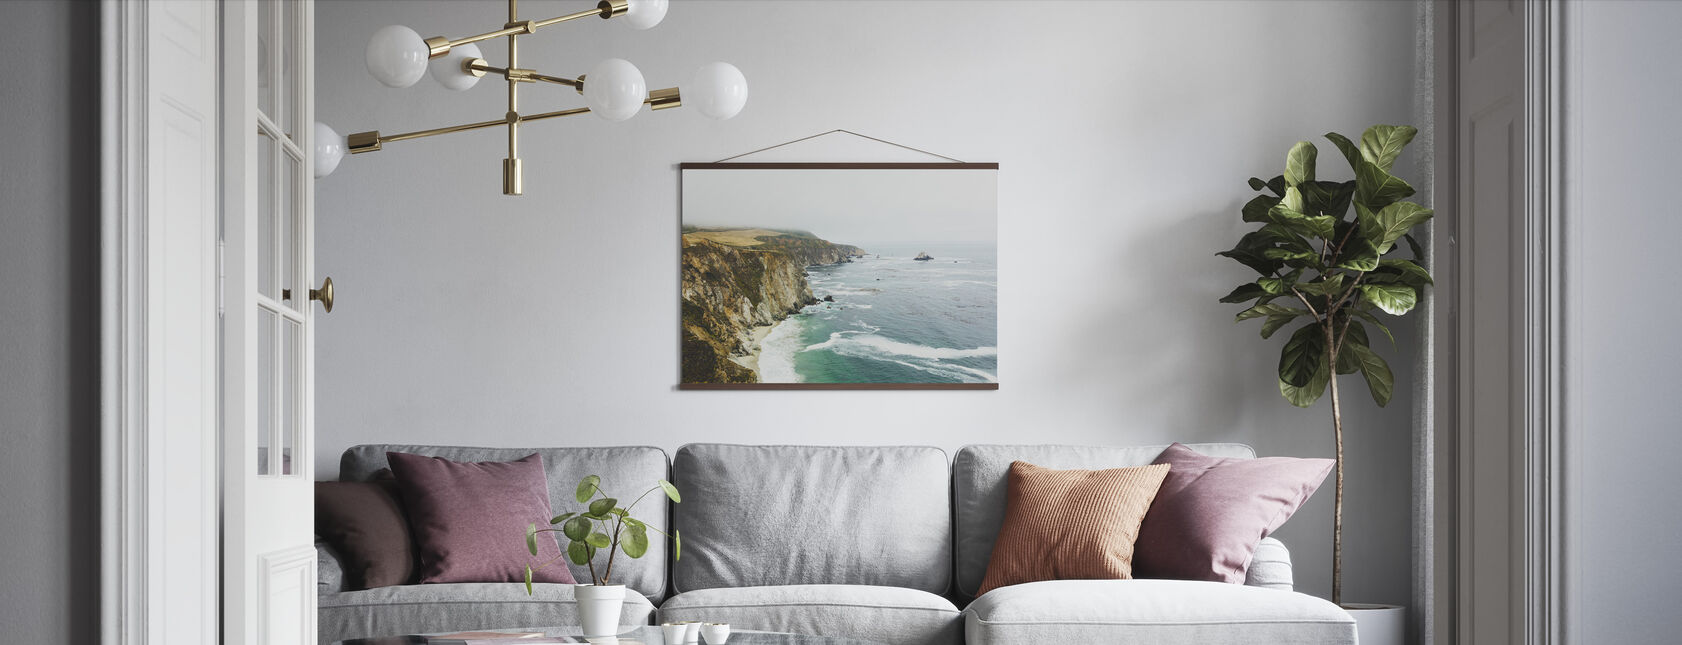 Big Sur, California - Poster - Living Room